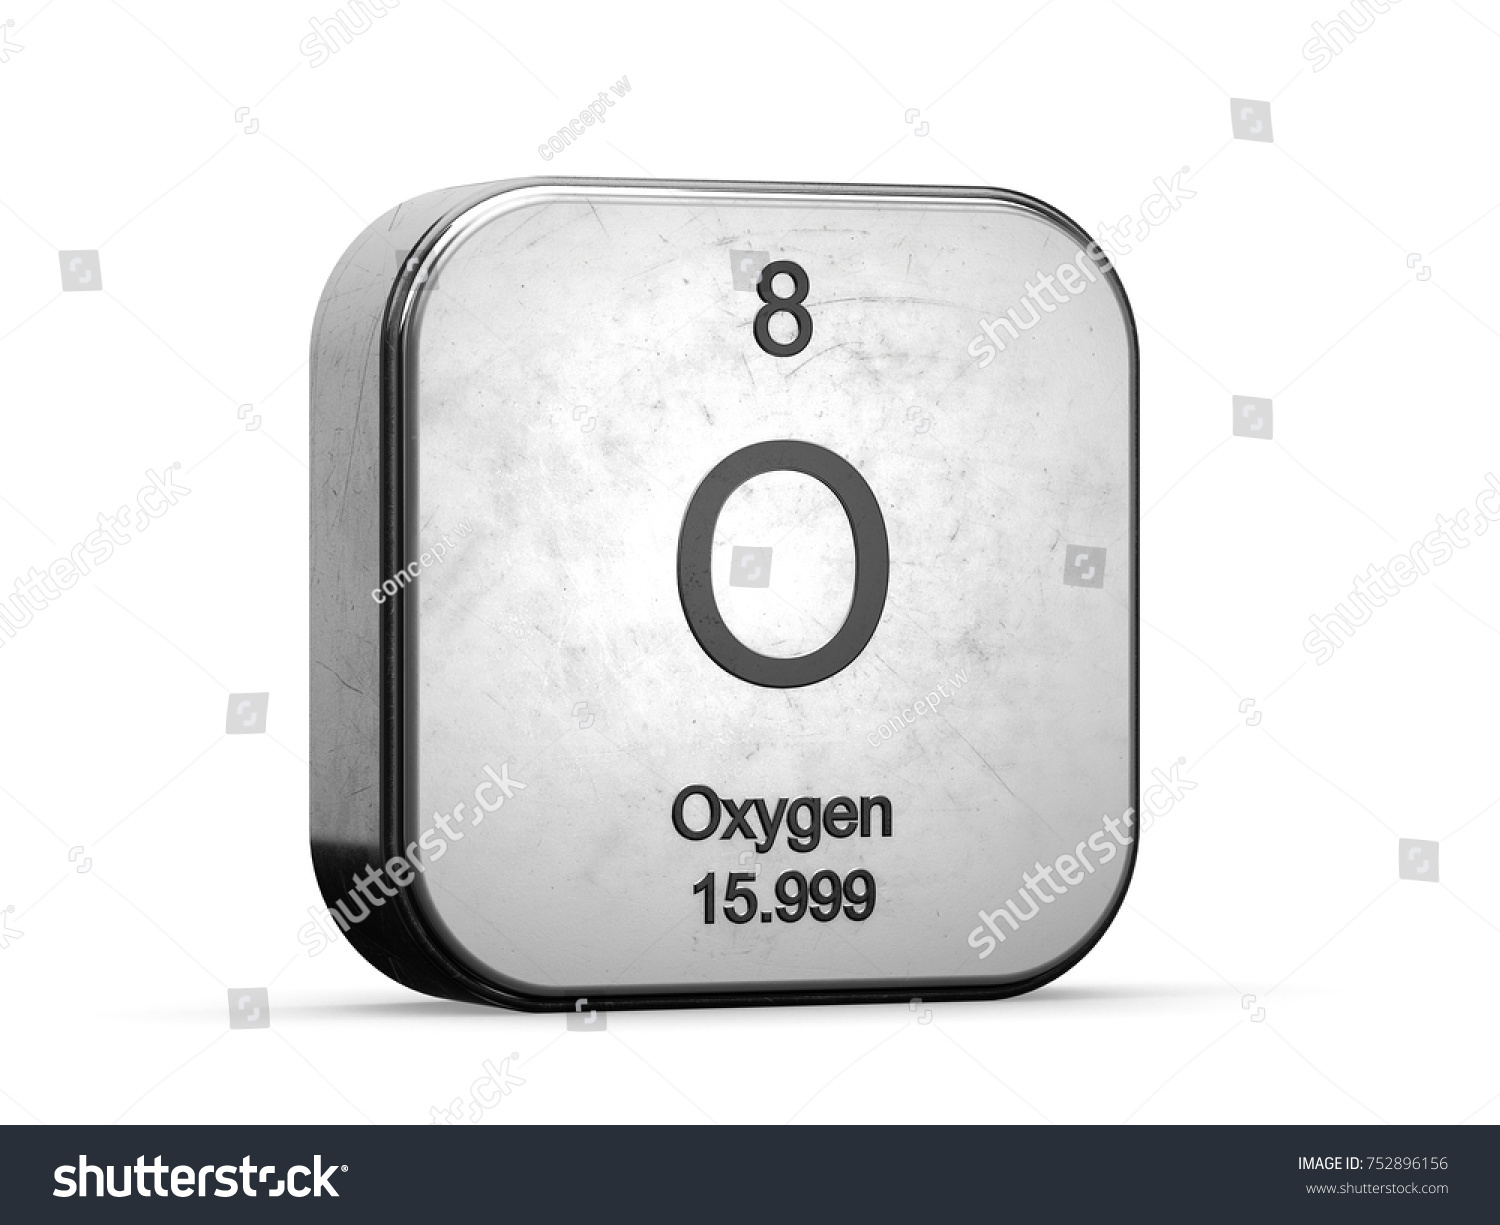 Oxygen atomic symbol images symbol and sign ideas oxygen element periodic table metallic icon stock illustration oxygen element from the periodic table metallic icon urtaz Gallery